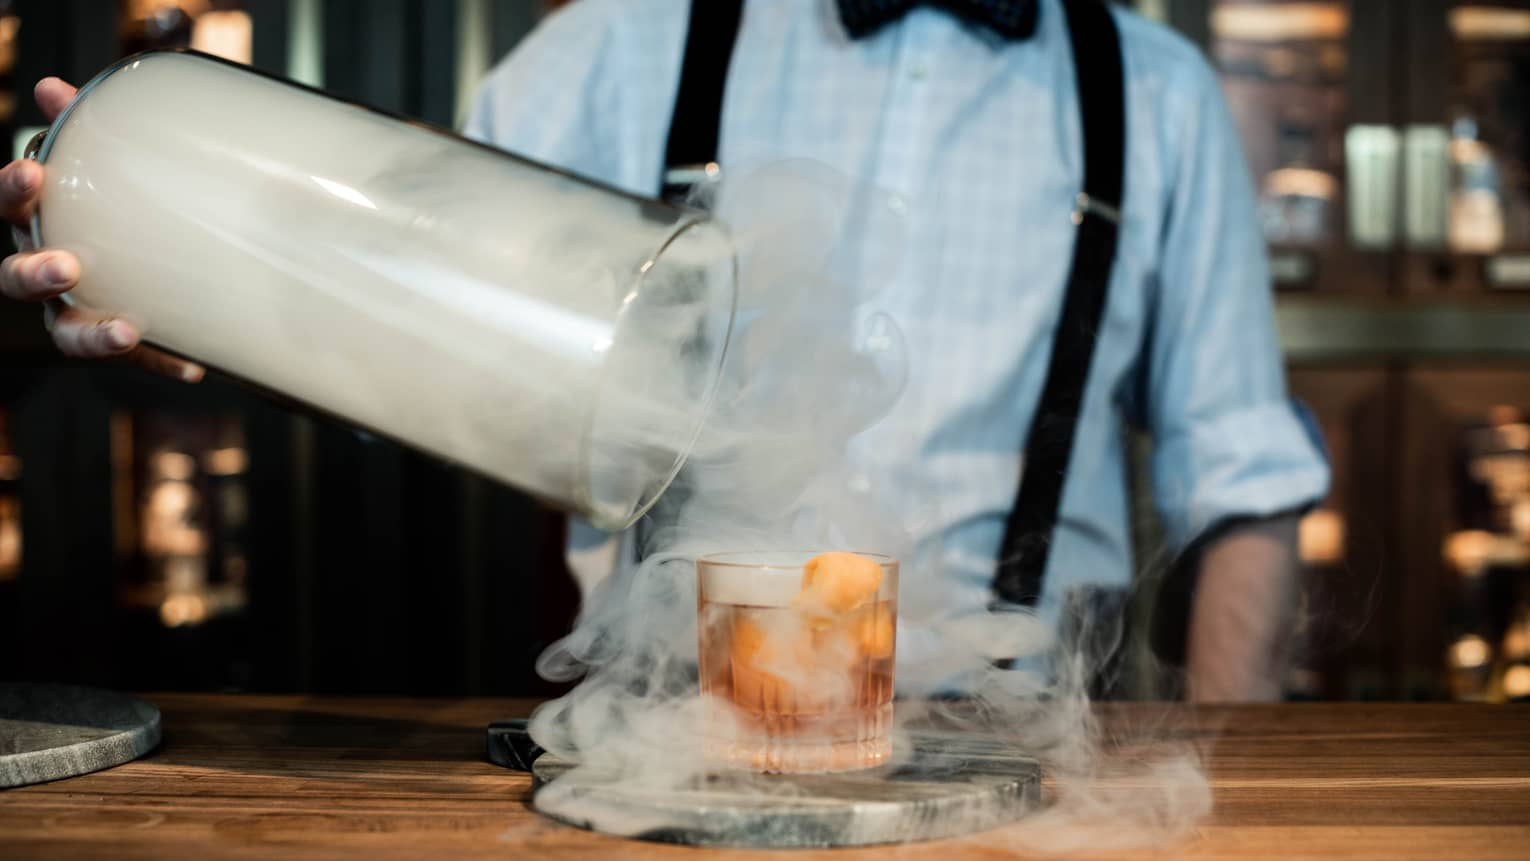 Smoke swirls around a cocktail as a bartender removes a lid